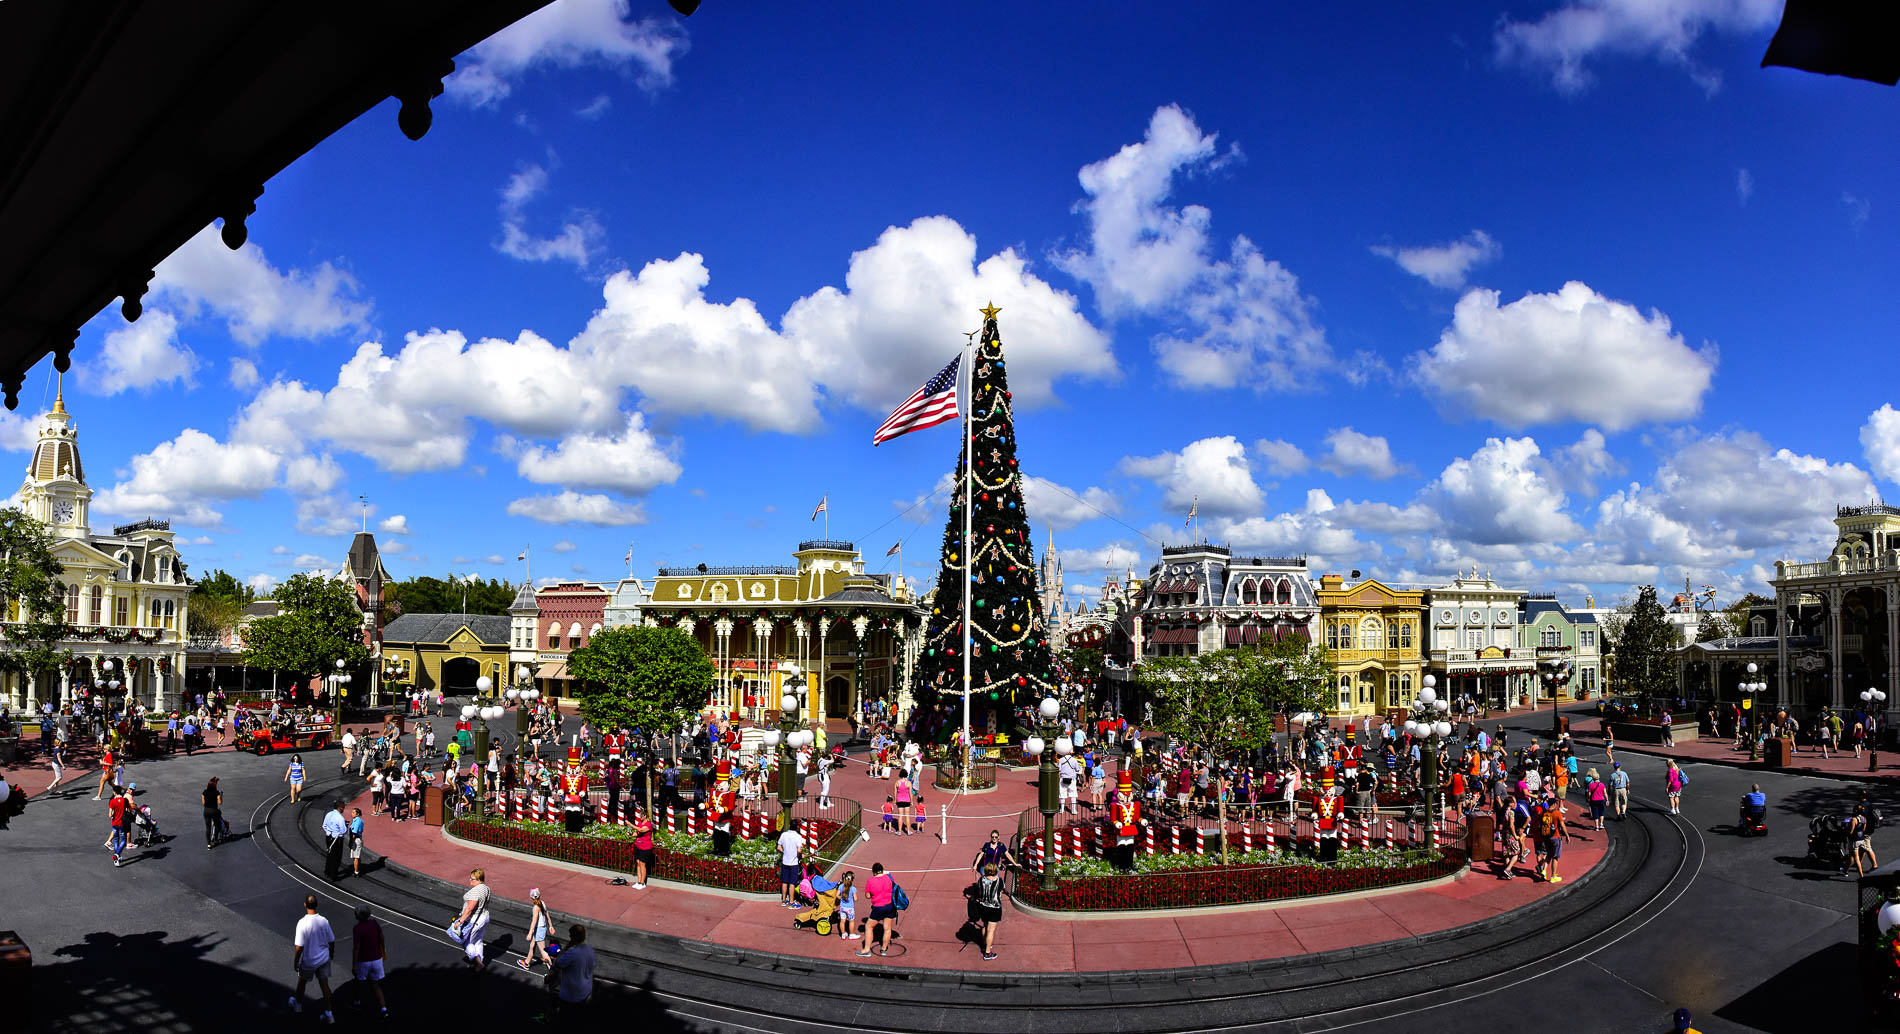 christmas at the magic kingdom shows up right after halloween in a big way with the decorations around the square on main street photo by donald fink - When Is Disney Decorated For Christmas